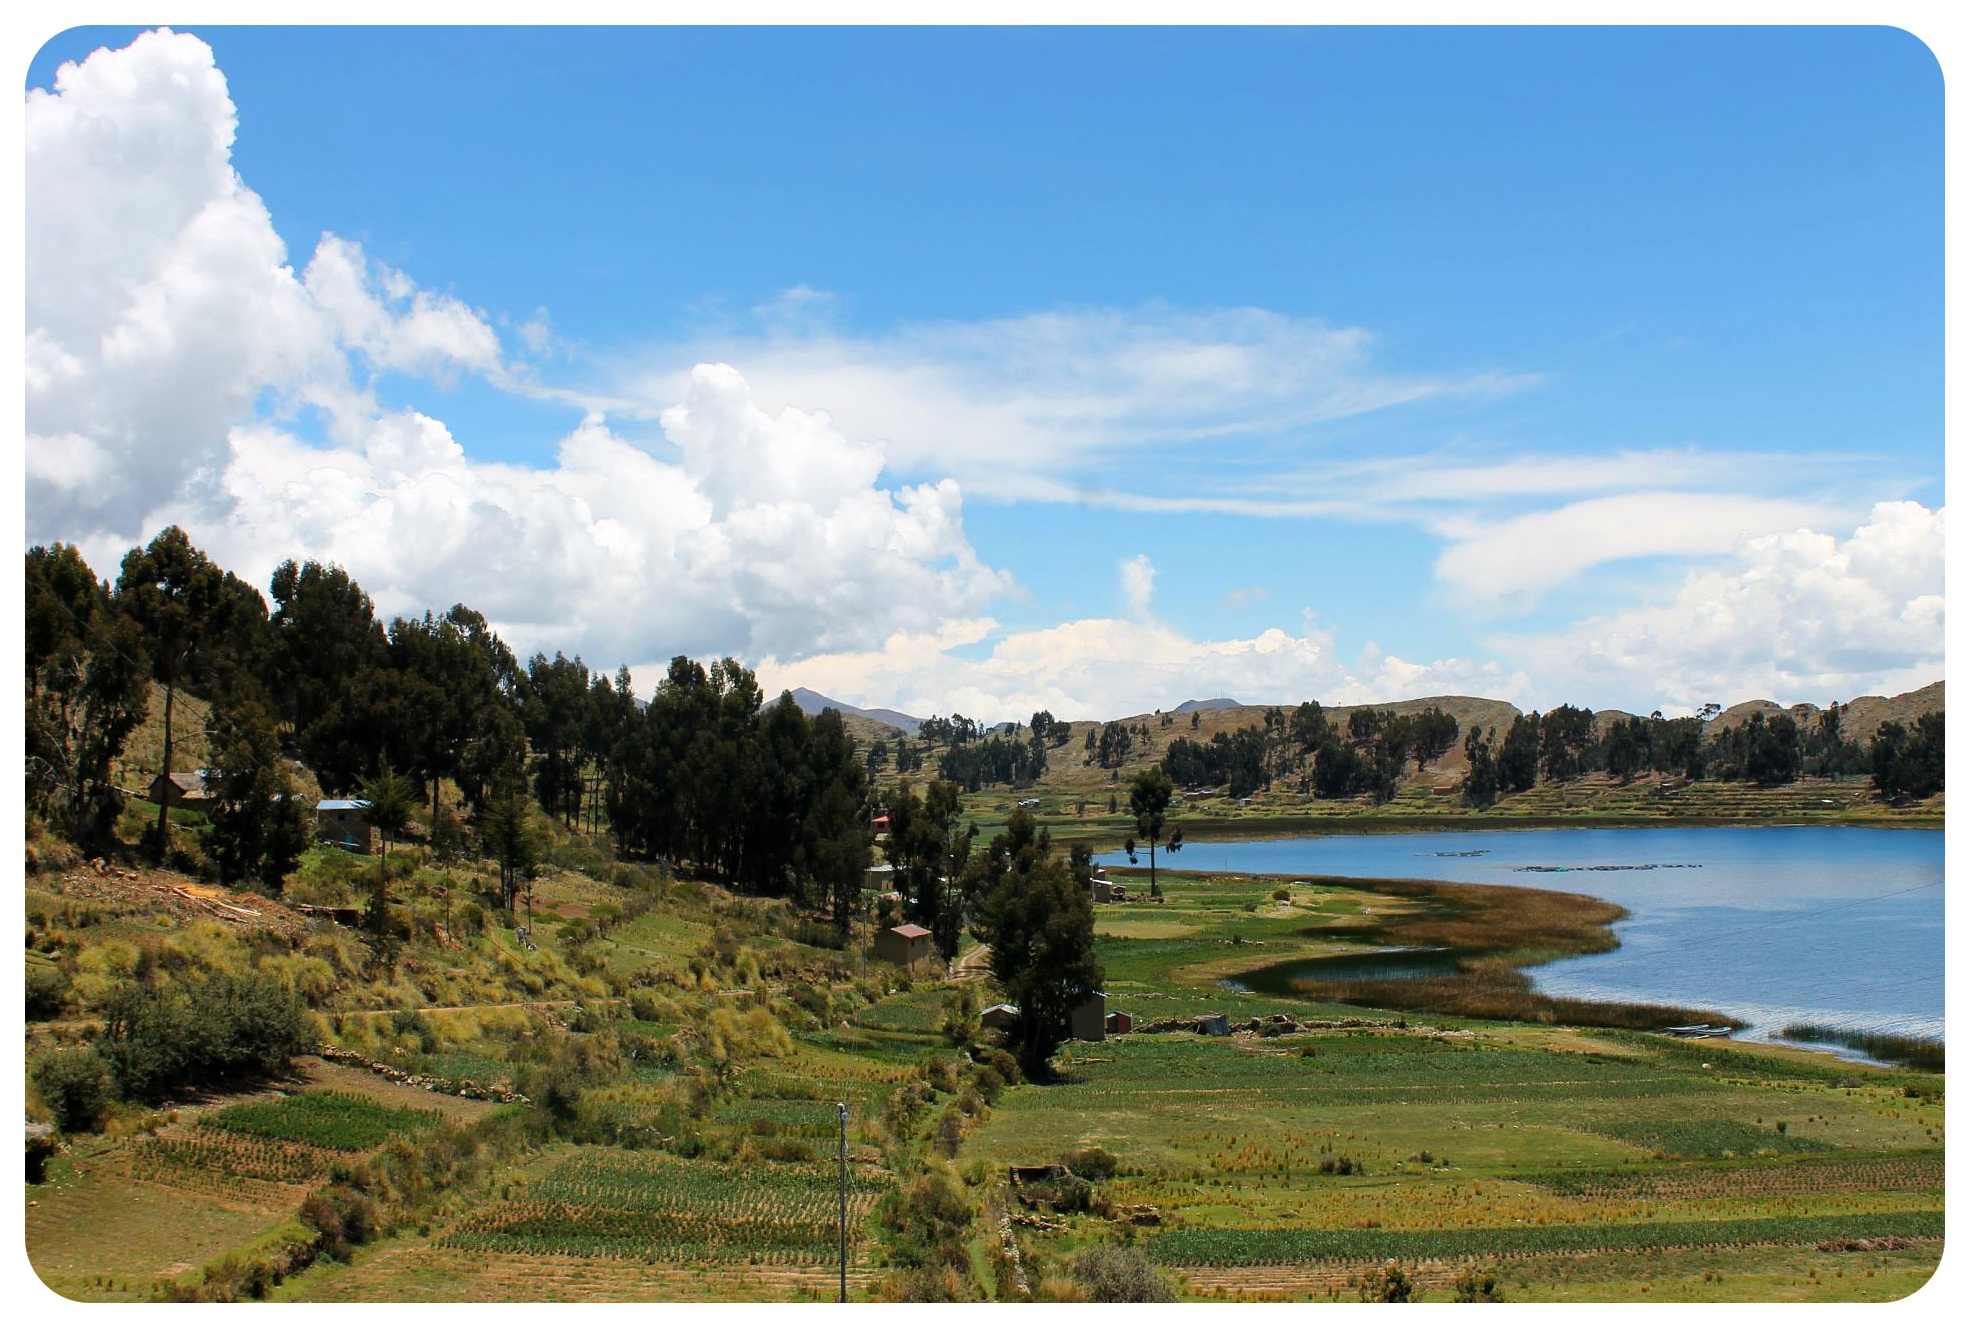 lake titicaca views